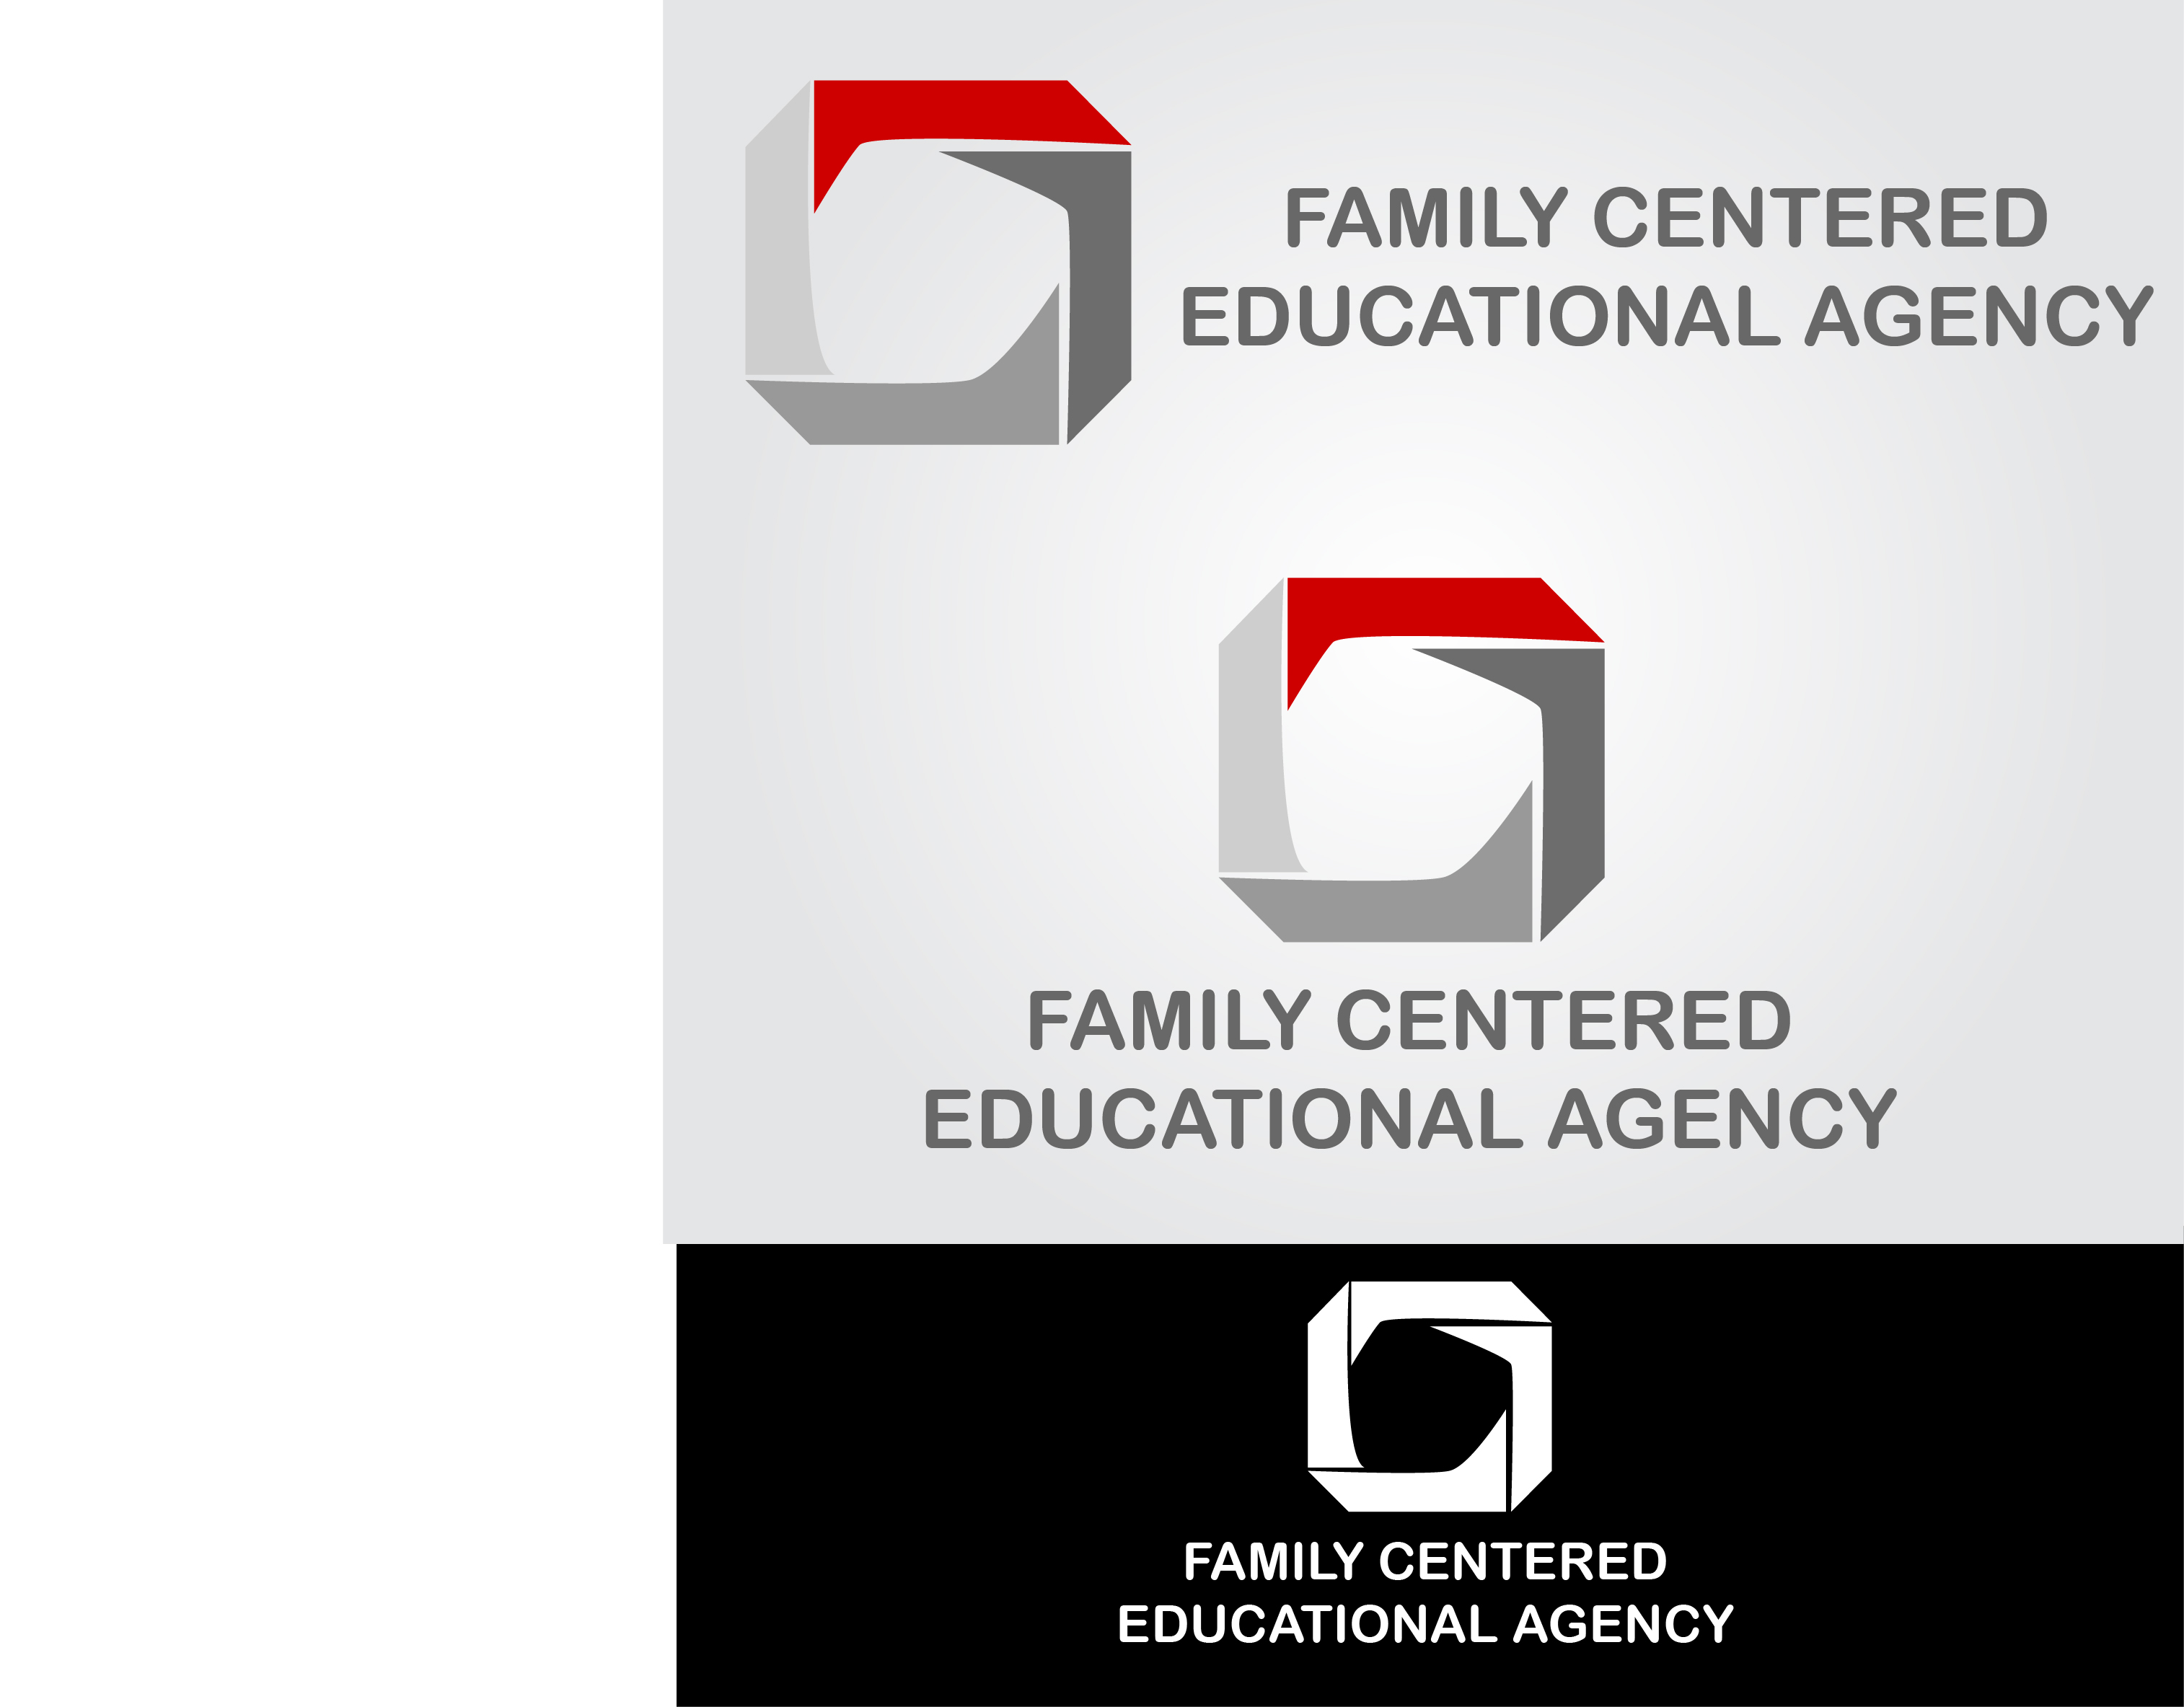 Logo Design by mediaproductionart - Entry No. 29 in the Logo Design Contest Captivating Logo Design for Family Centered Educational Agency.